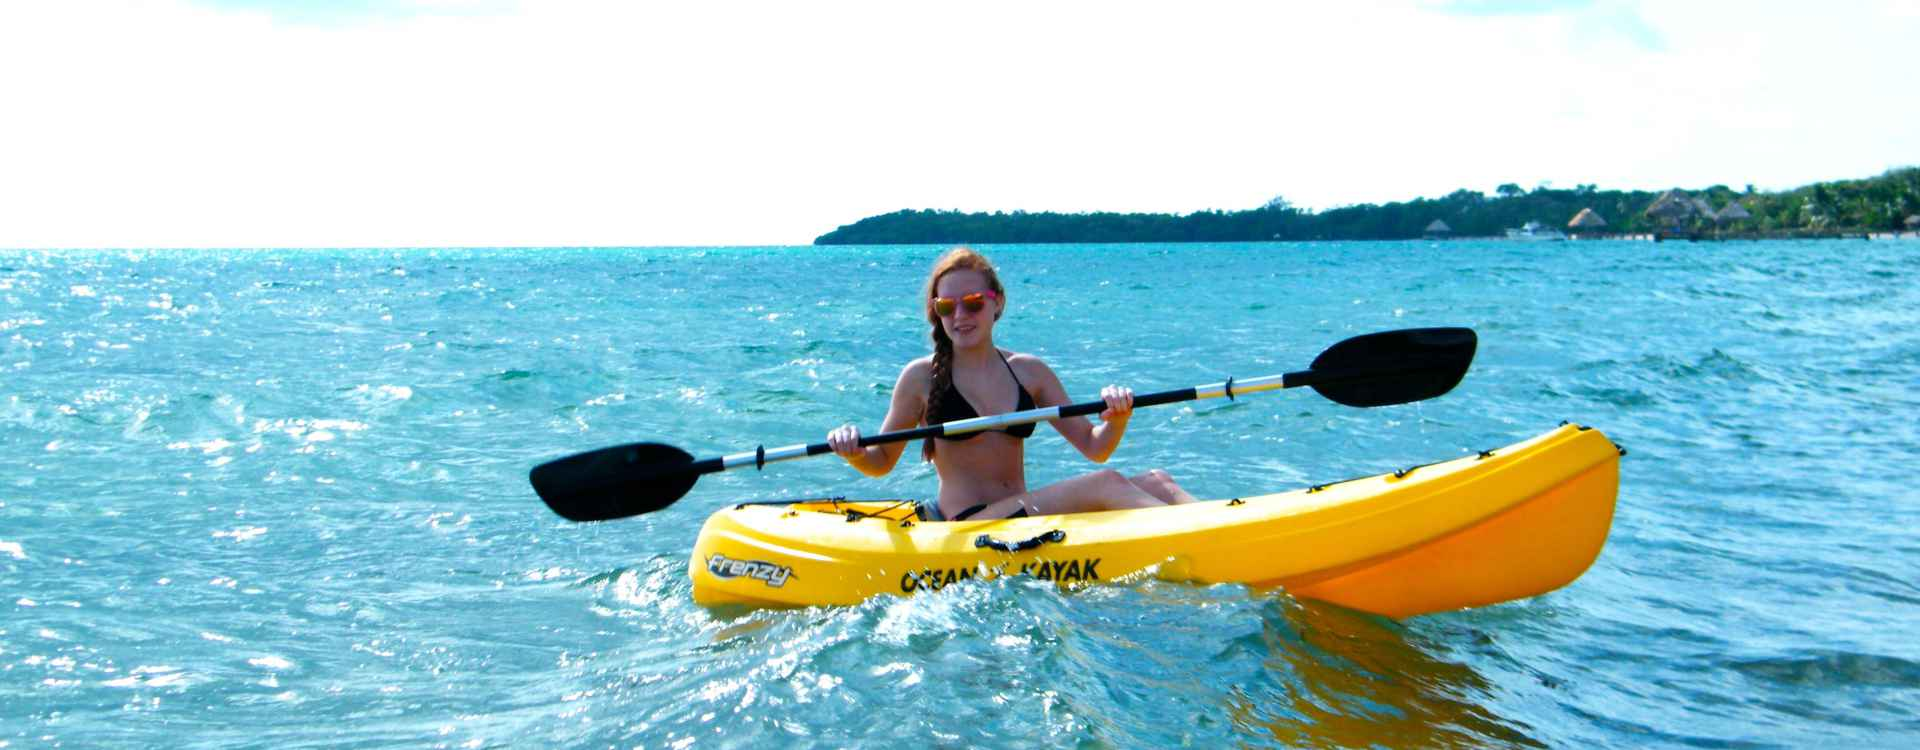 Kayaking Tour in Ixtapa Zihuatanejo Mexico | Pacific Tours Ixtapa. Kayaking in Barra de Potosi (20 minutes of Ixtapa Zihuatanejo) is very nice due to its calm water and variety of birds that can can be seen at the morning. Enjoy this Sunrise Kayak Tour in Ixtapa Zihuatanejo